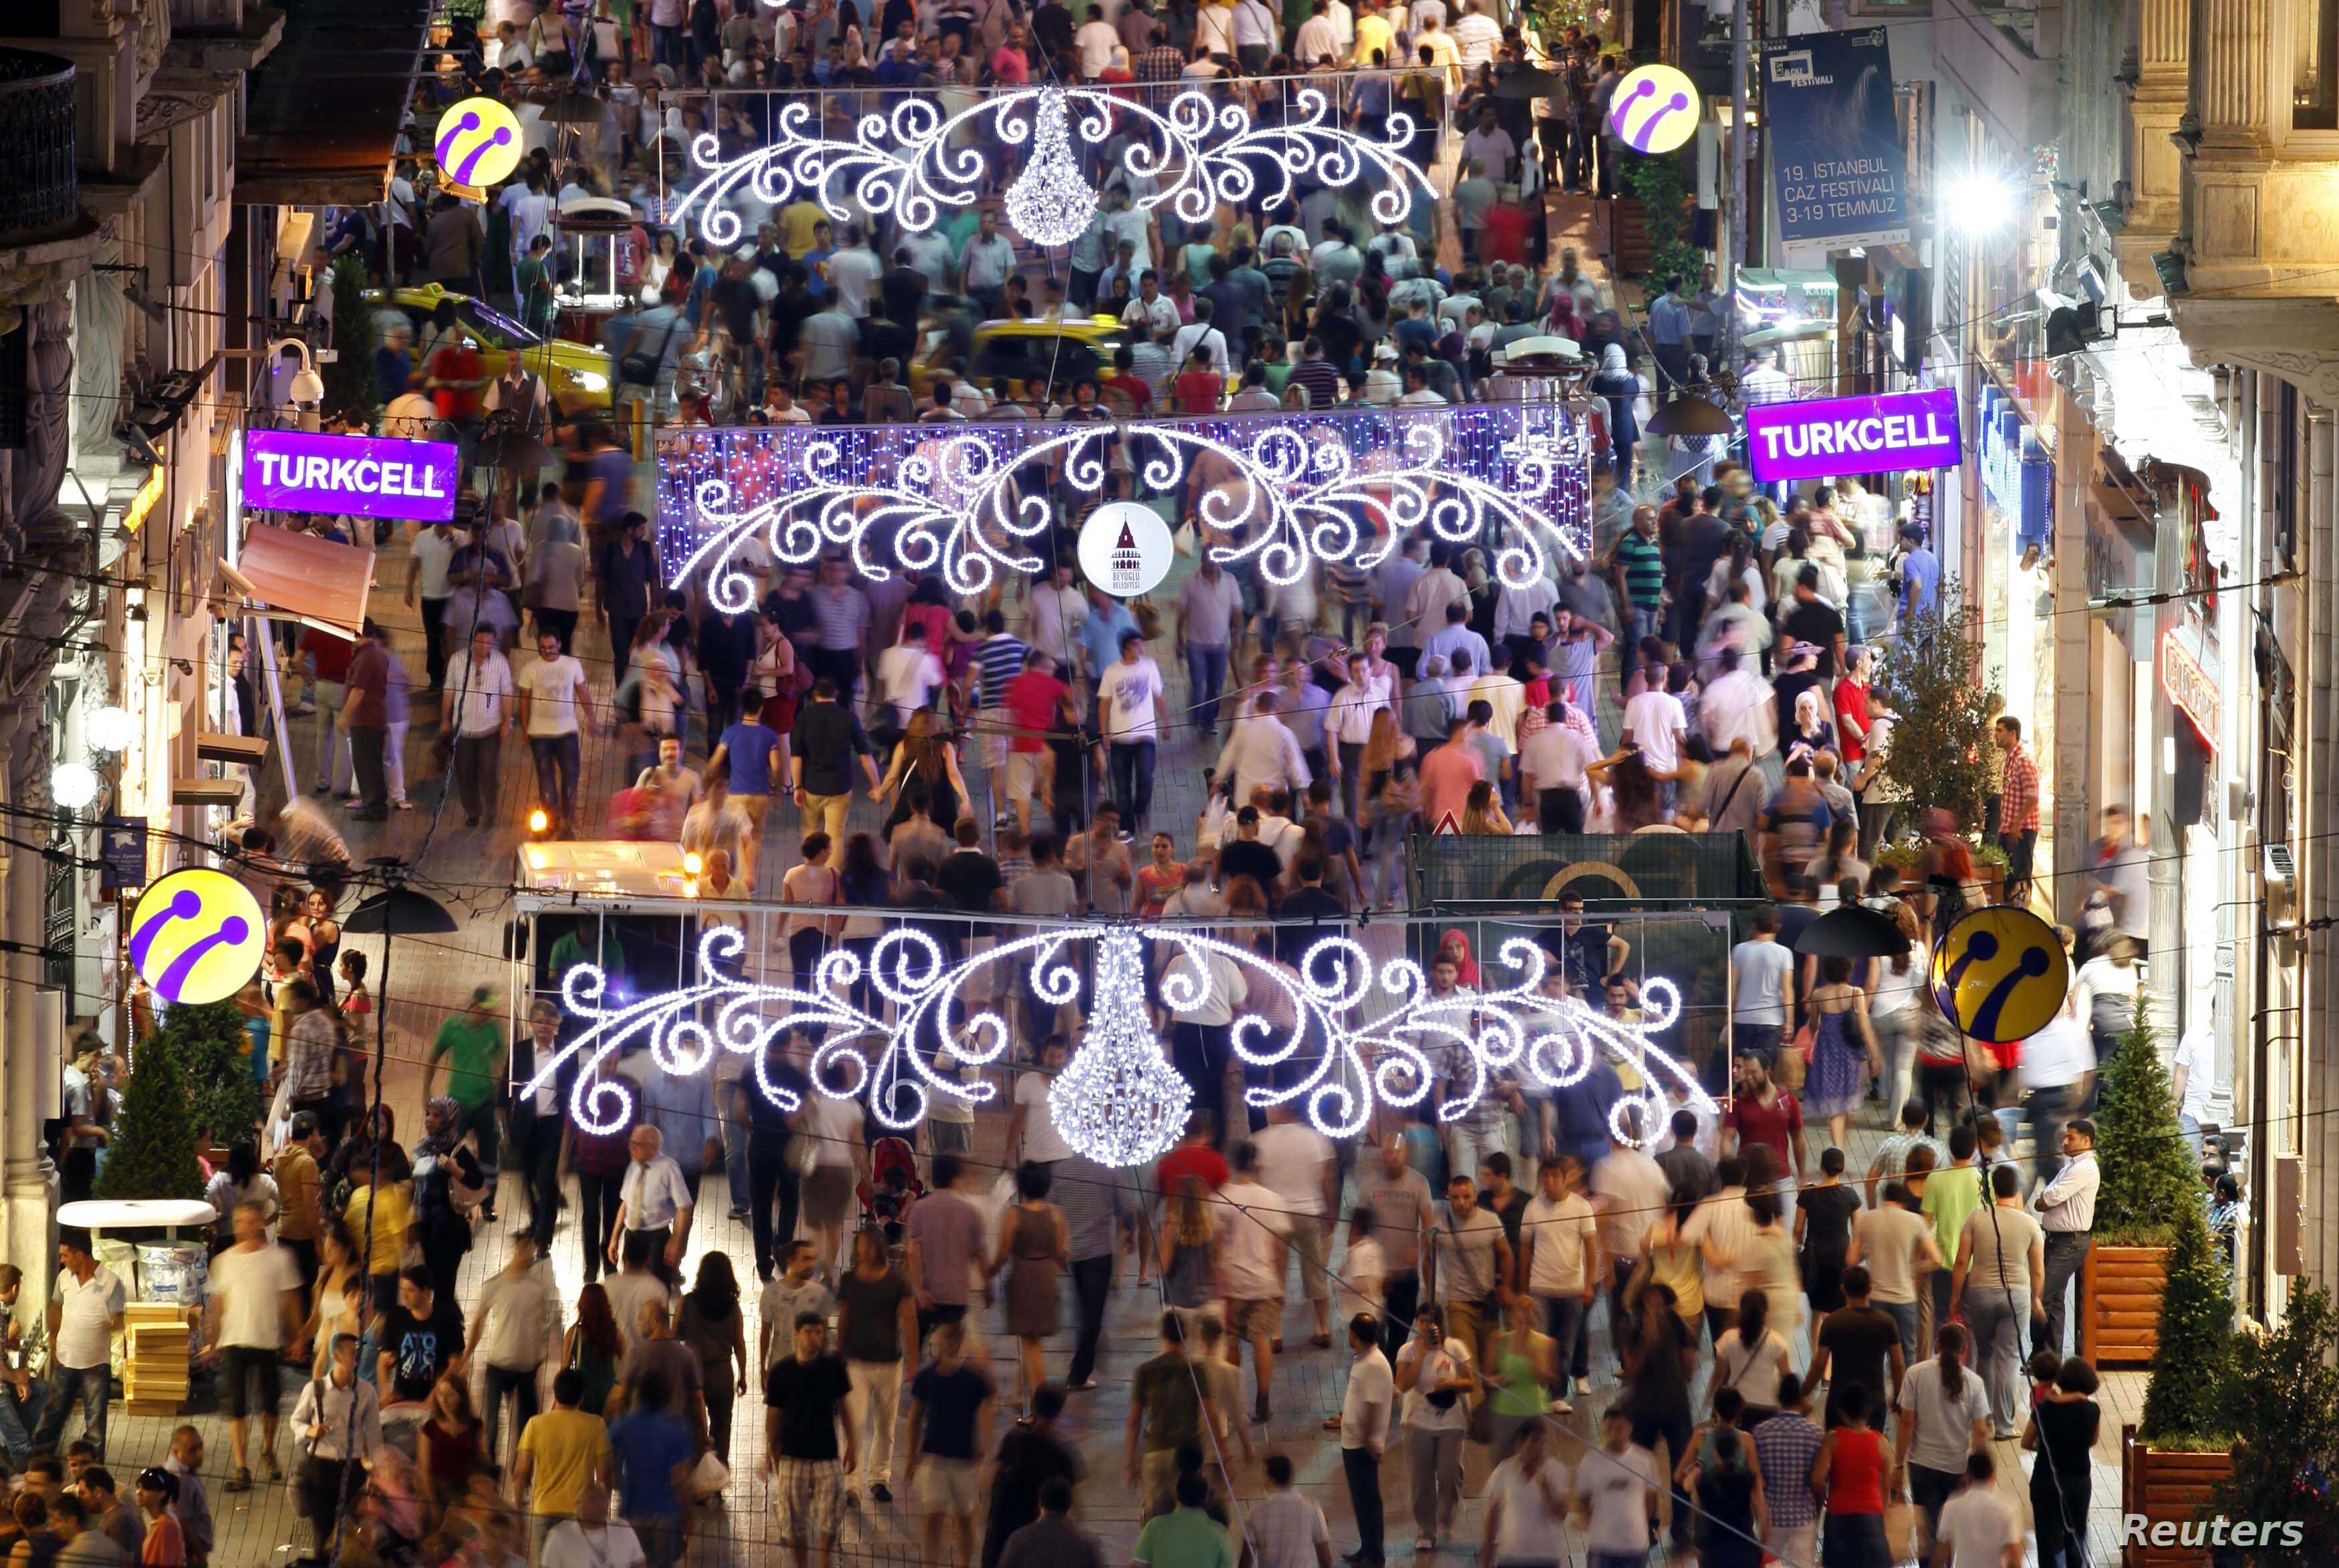 People walk along a main shopping street of Istiklal in Istanbul, Turkey, July 11, 2012.